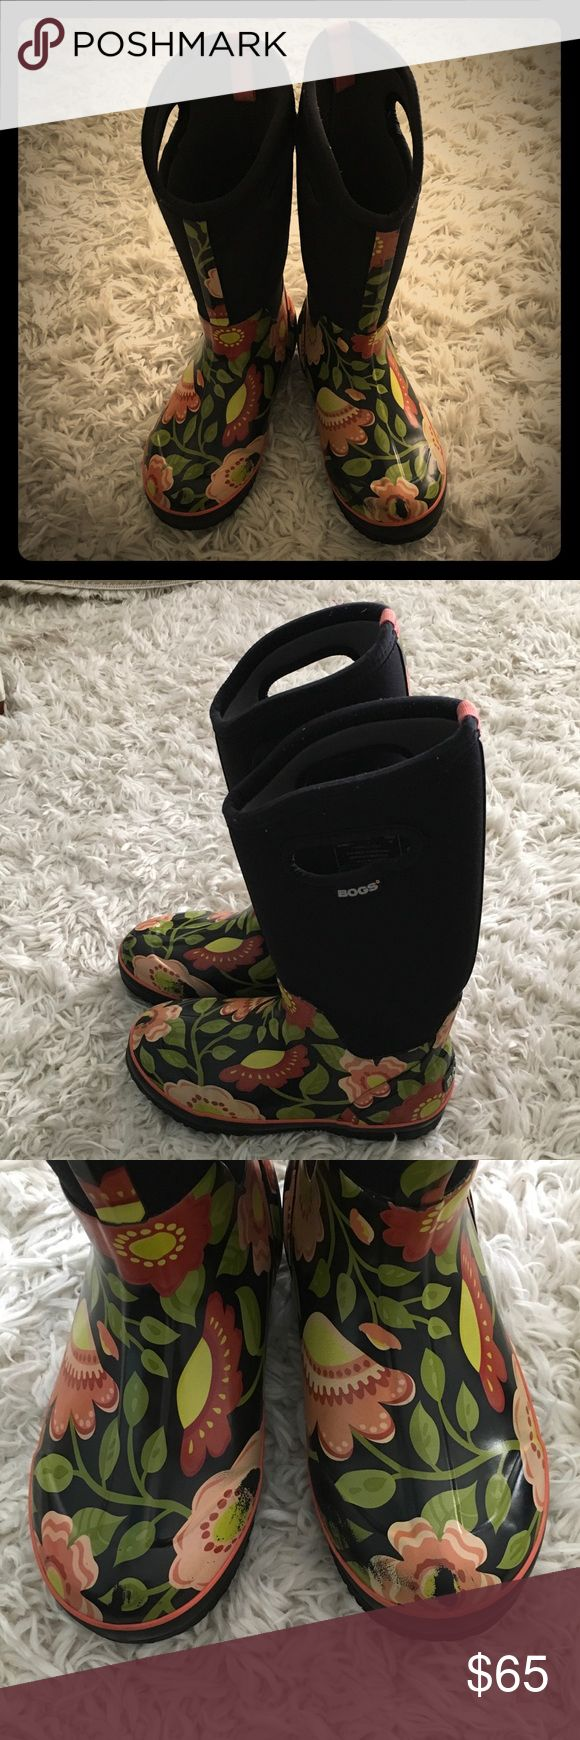 Bogs Rain Boots ☔️ These boots are in great condition!  They are perfect for spring.  These Bogs are very easy to get on and off and are extremely comfortable.  They do have some slight rubbed off coloring (see photos). Bogs Shoes Winter & Rain Boots